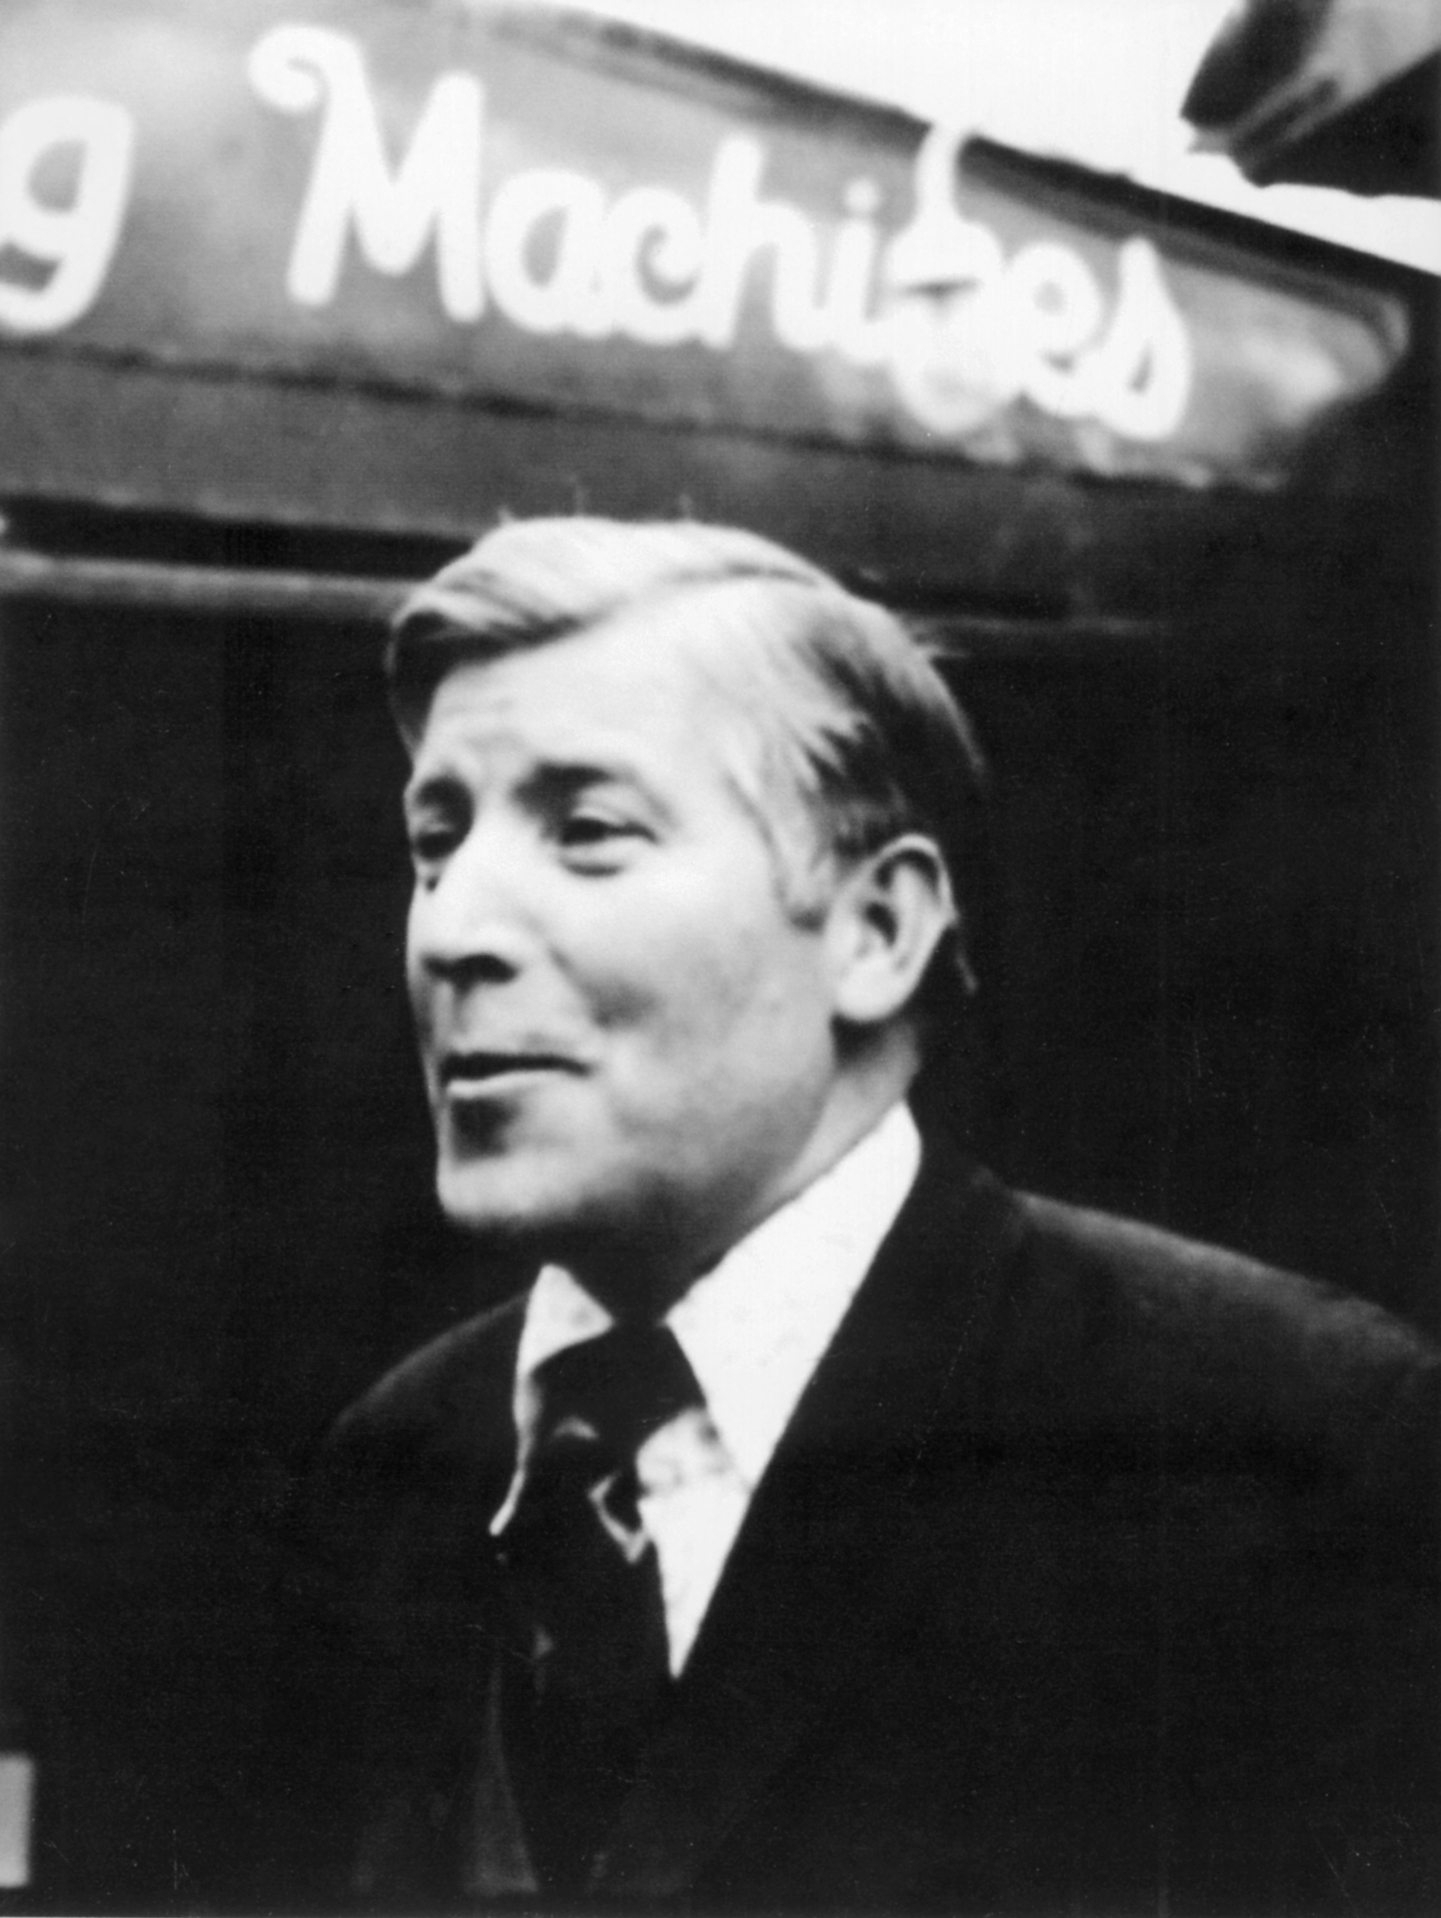 Noel Dalzell, founder of Dalzell's of Markethill